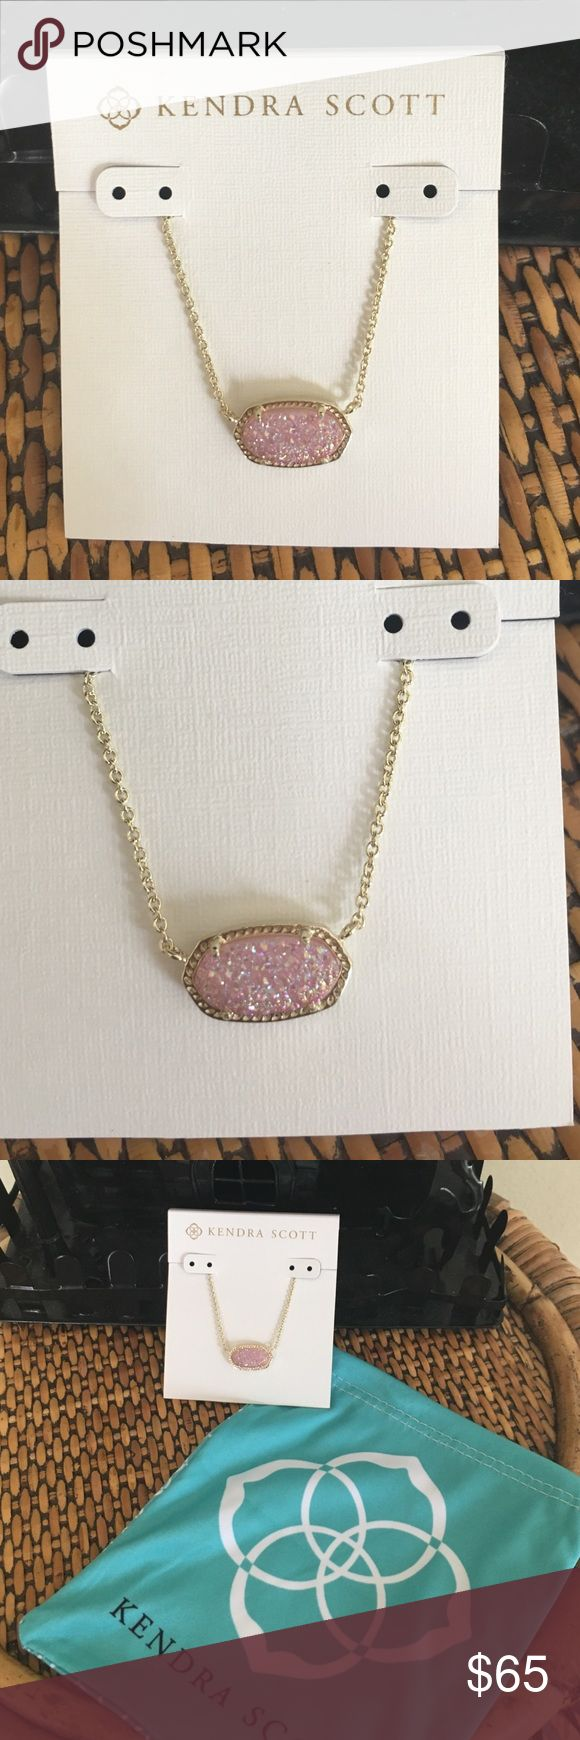 Kendra Scott Elisa Necklace Brand New With Tags Gorgeous